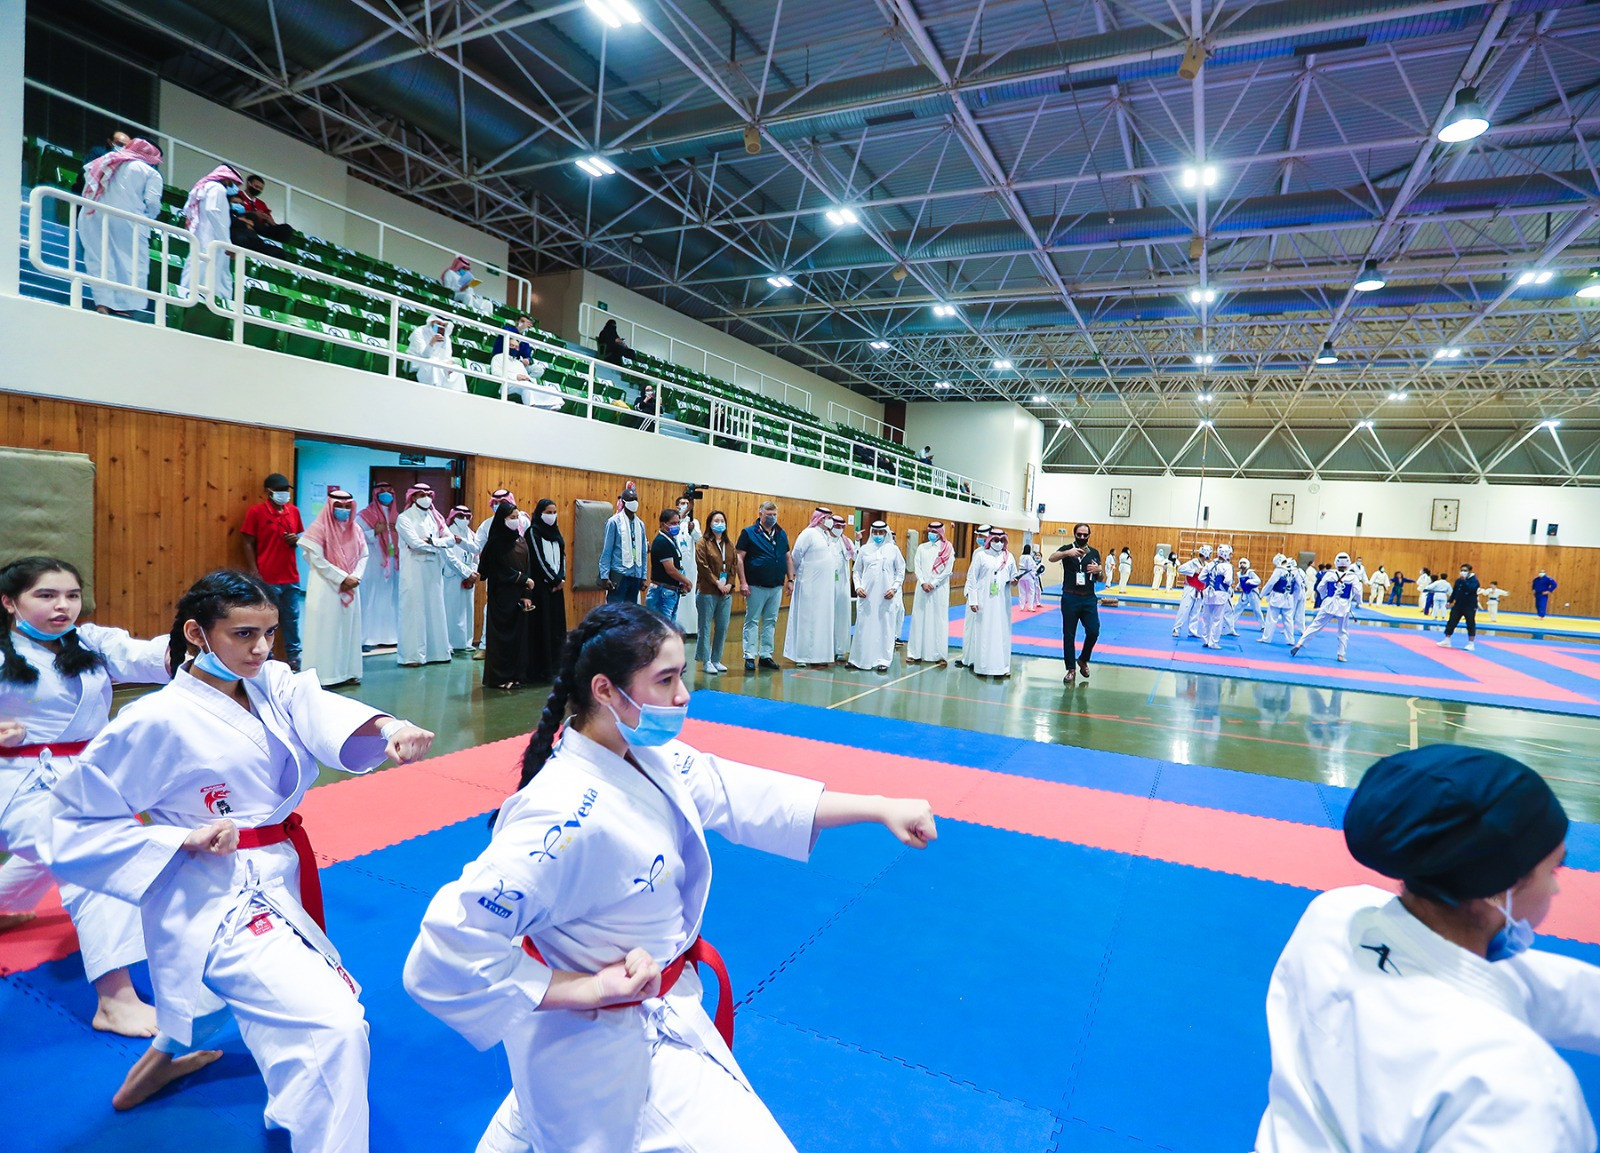 Athletes' academy to be created as part of Riyadh's plans for 2030 Asian Games